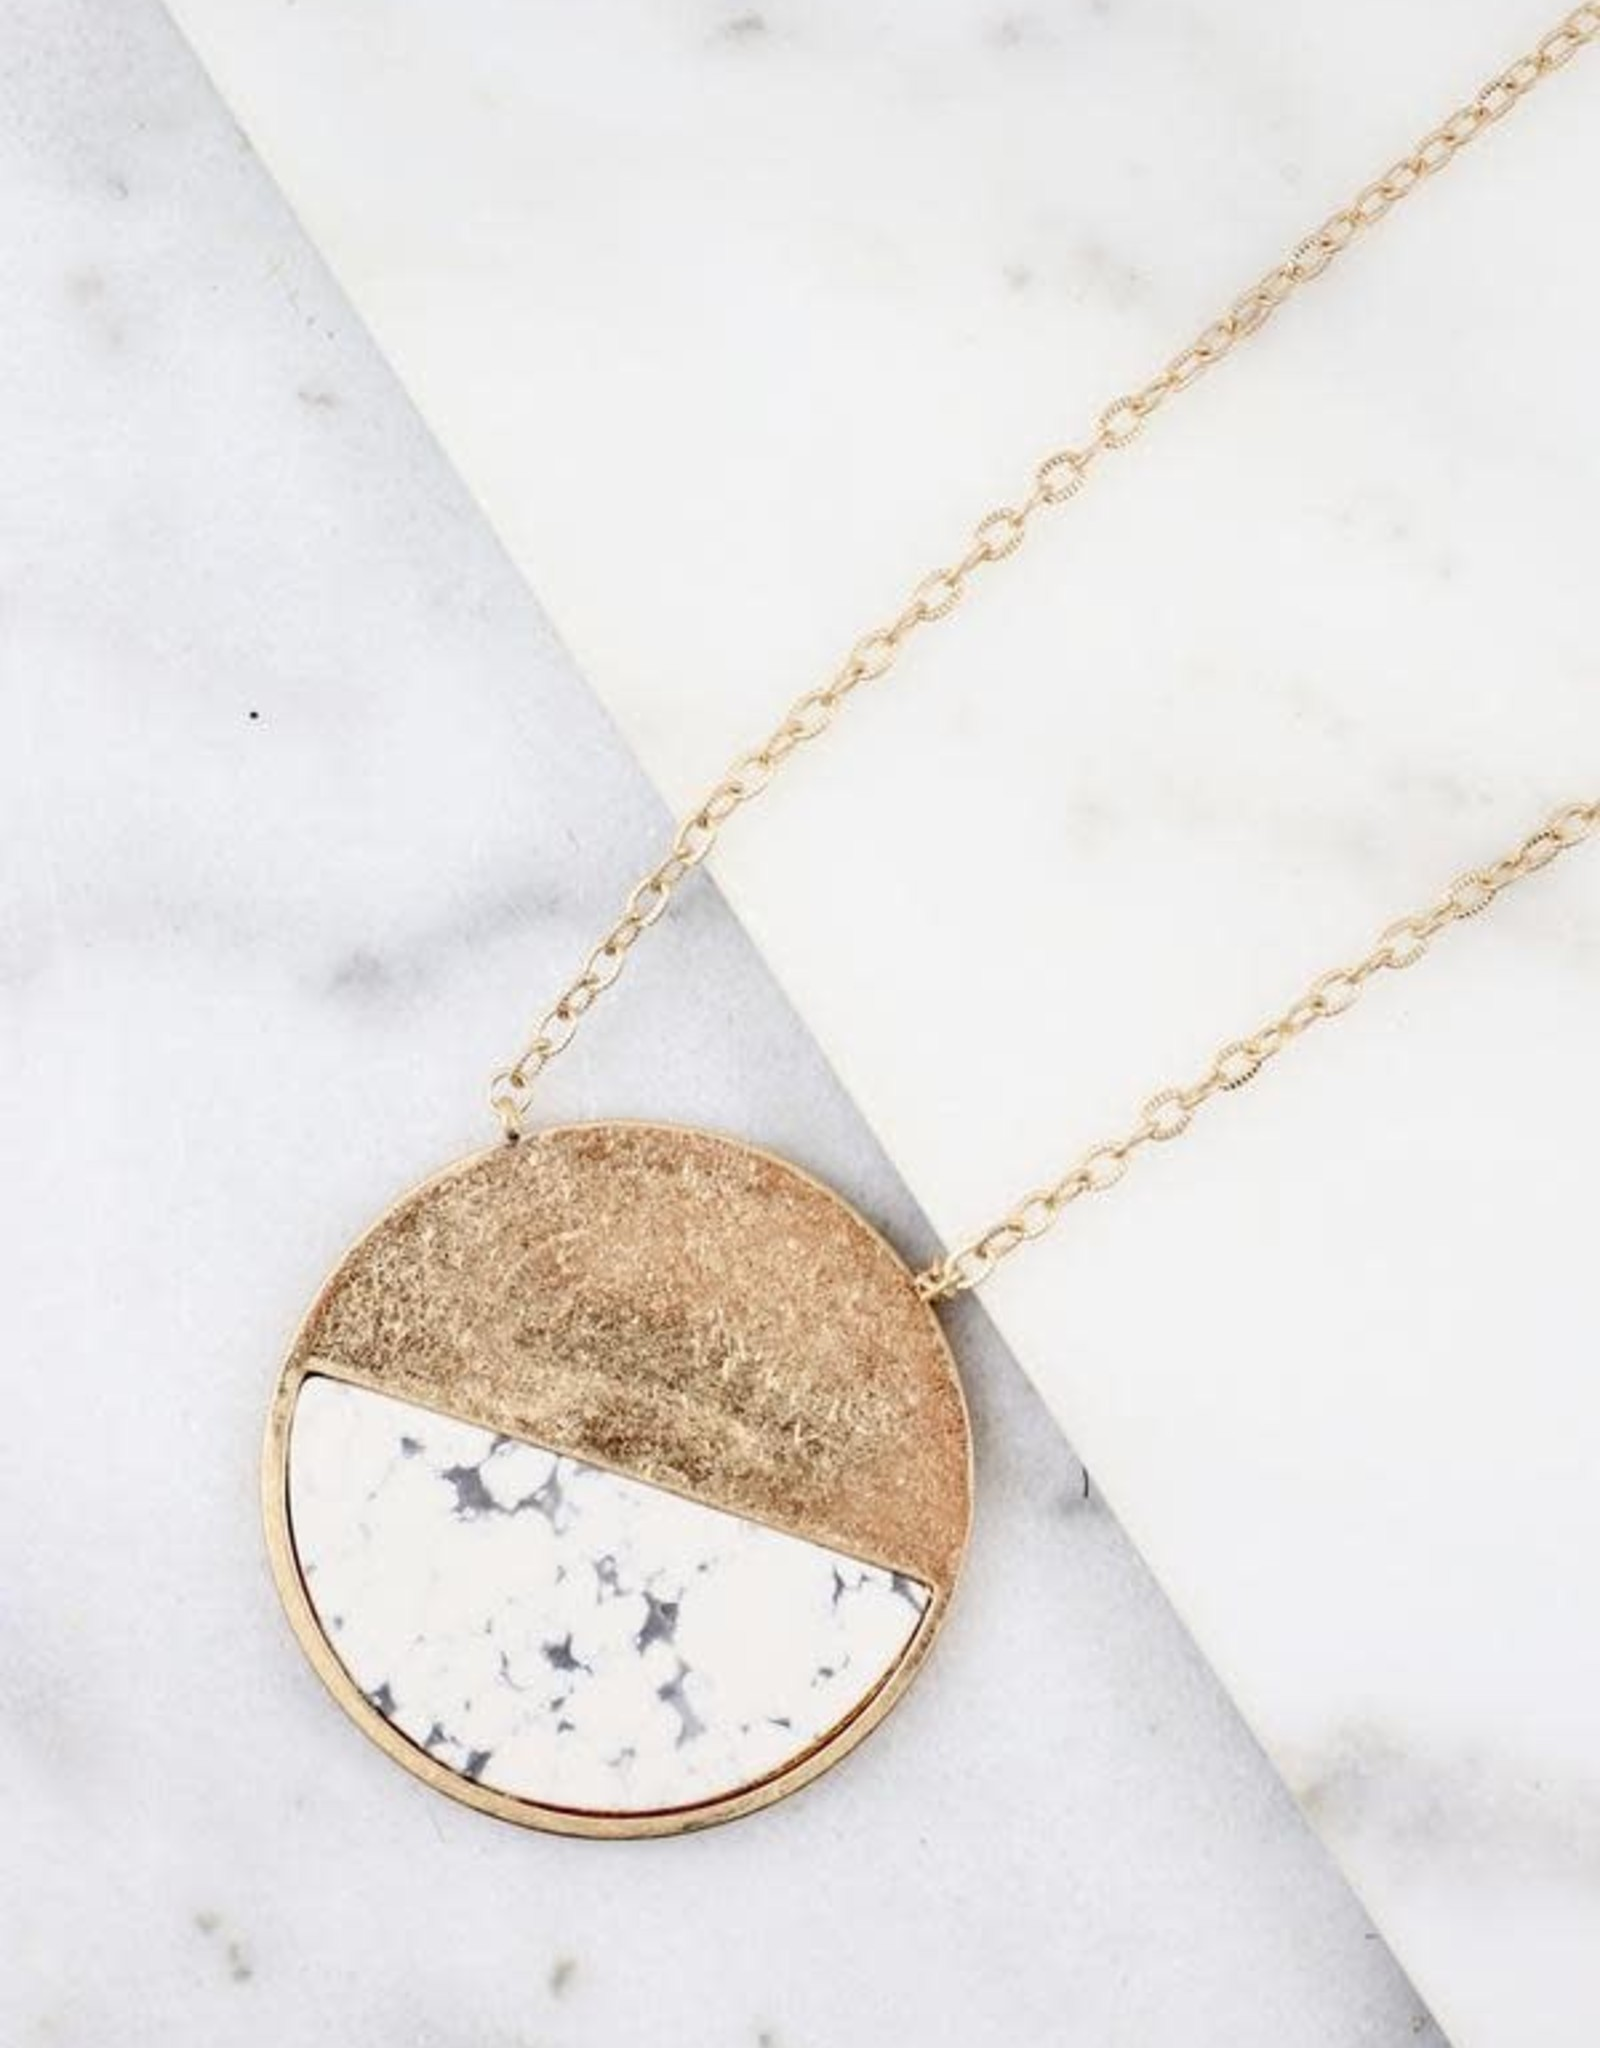 Parsons long necklace with round pendant howlite